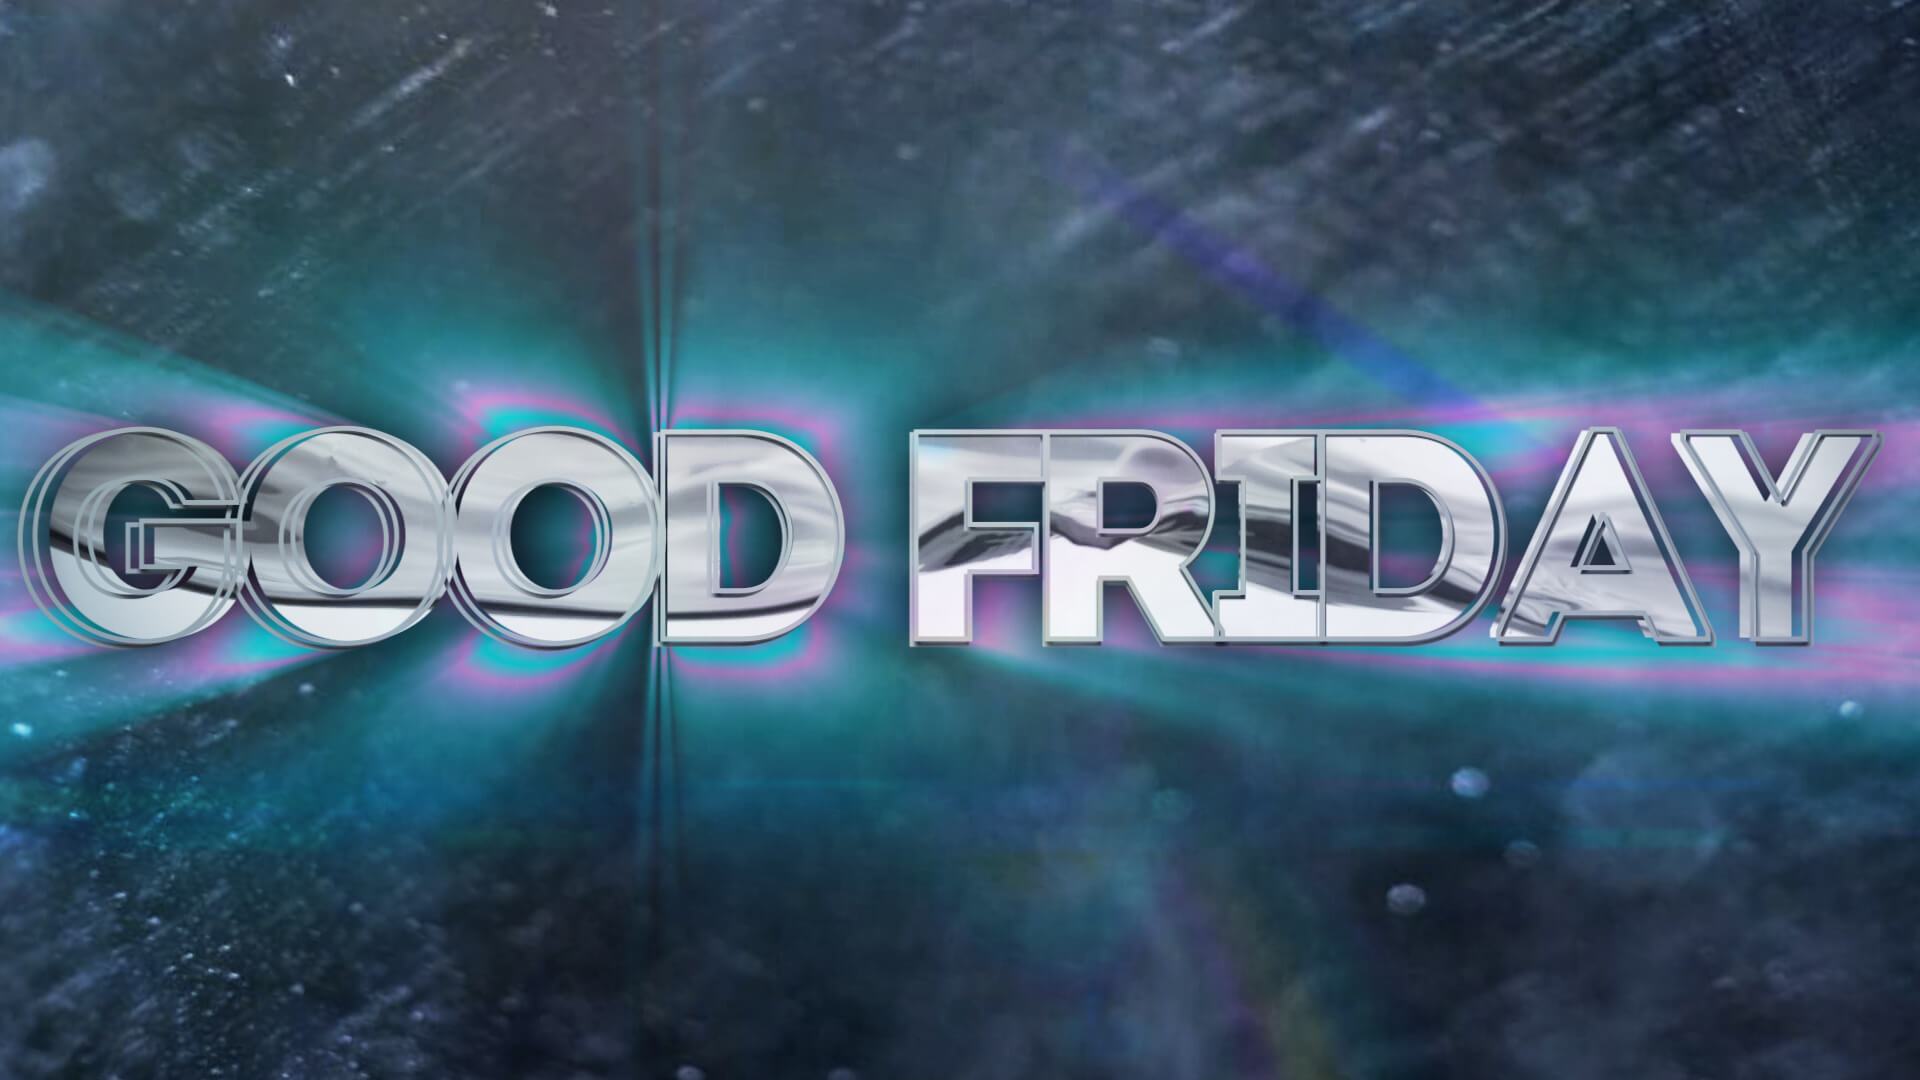 good friday wallpaper desktop hd free